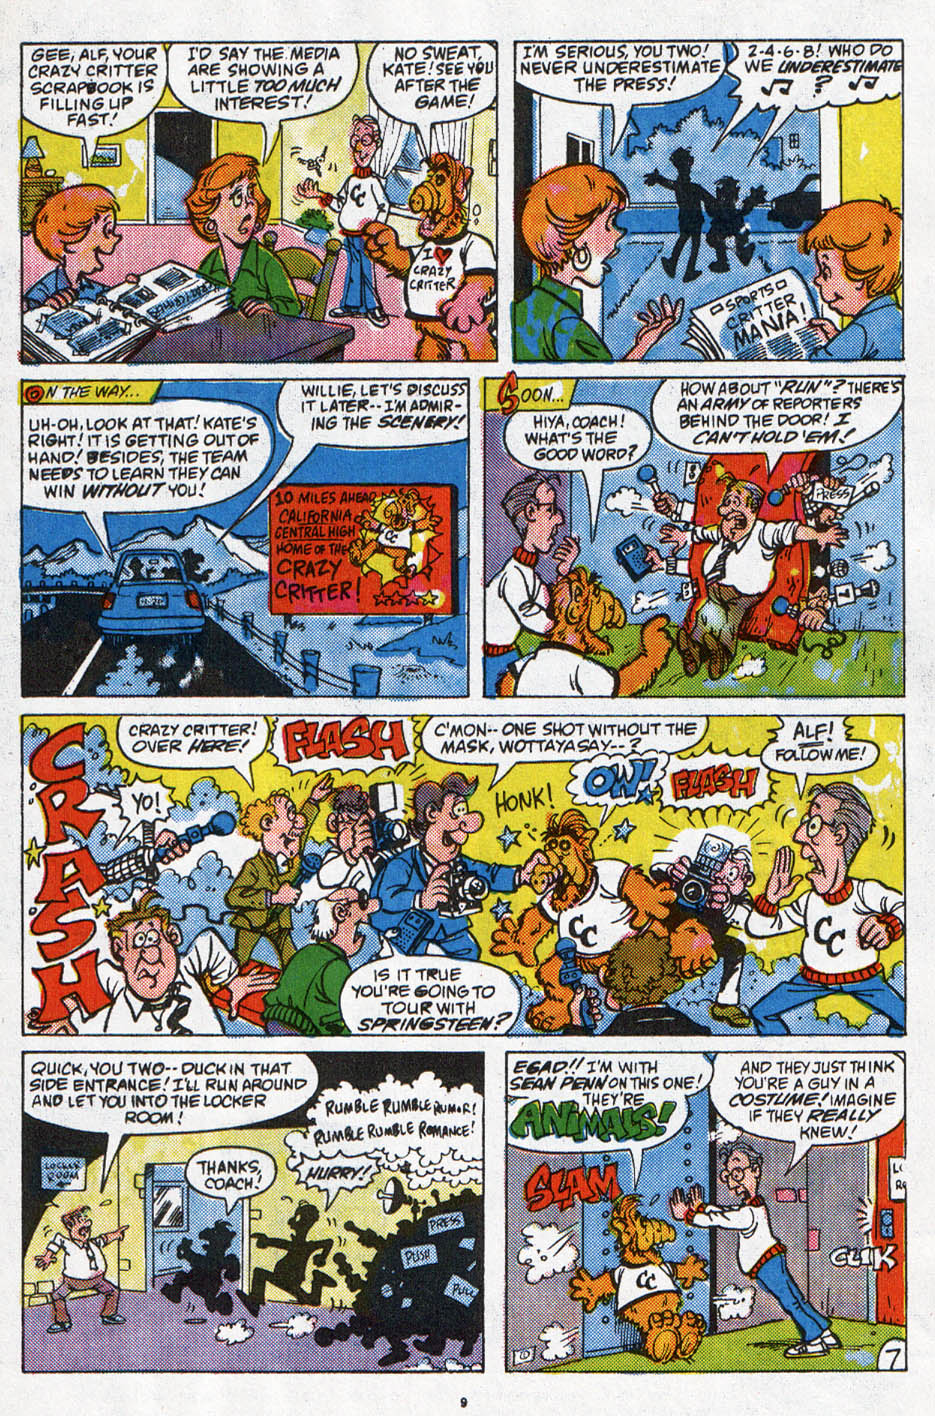 Read online ALF comic -  Issue #6 - 8